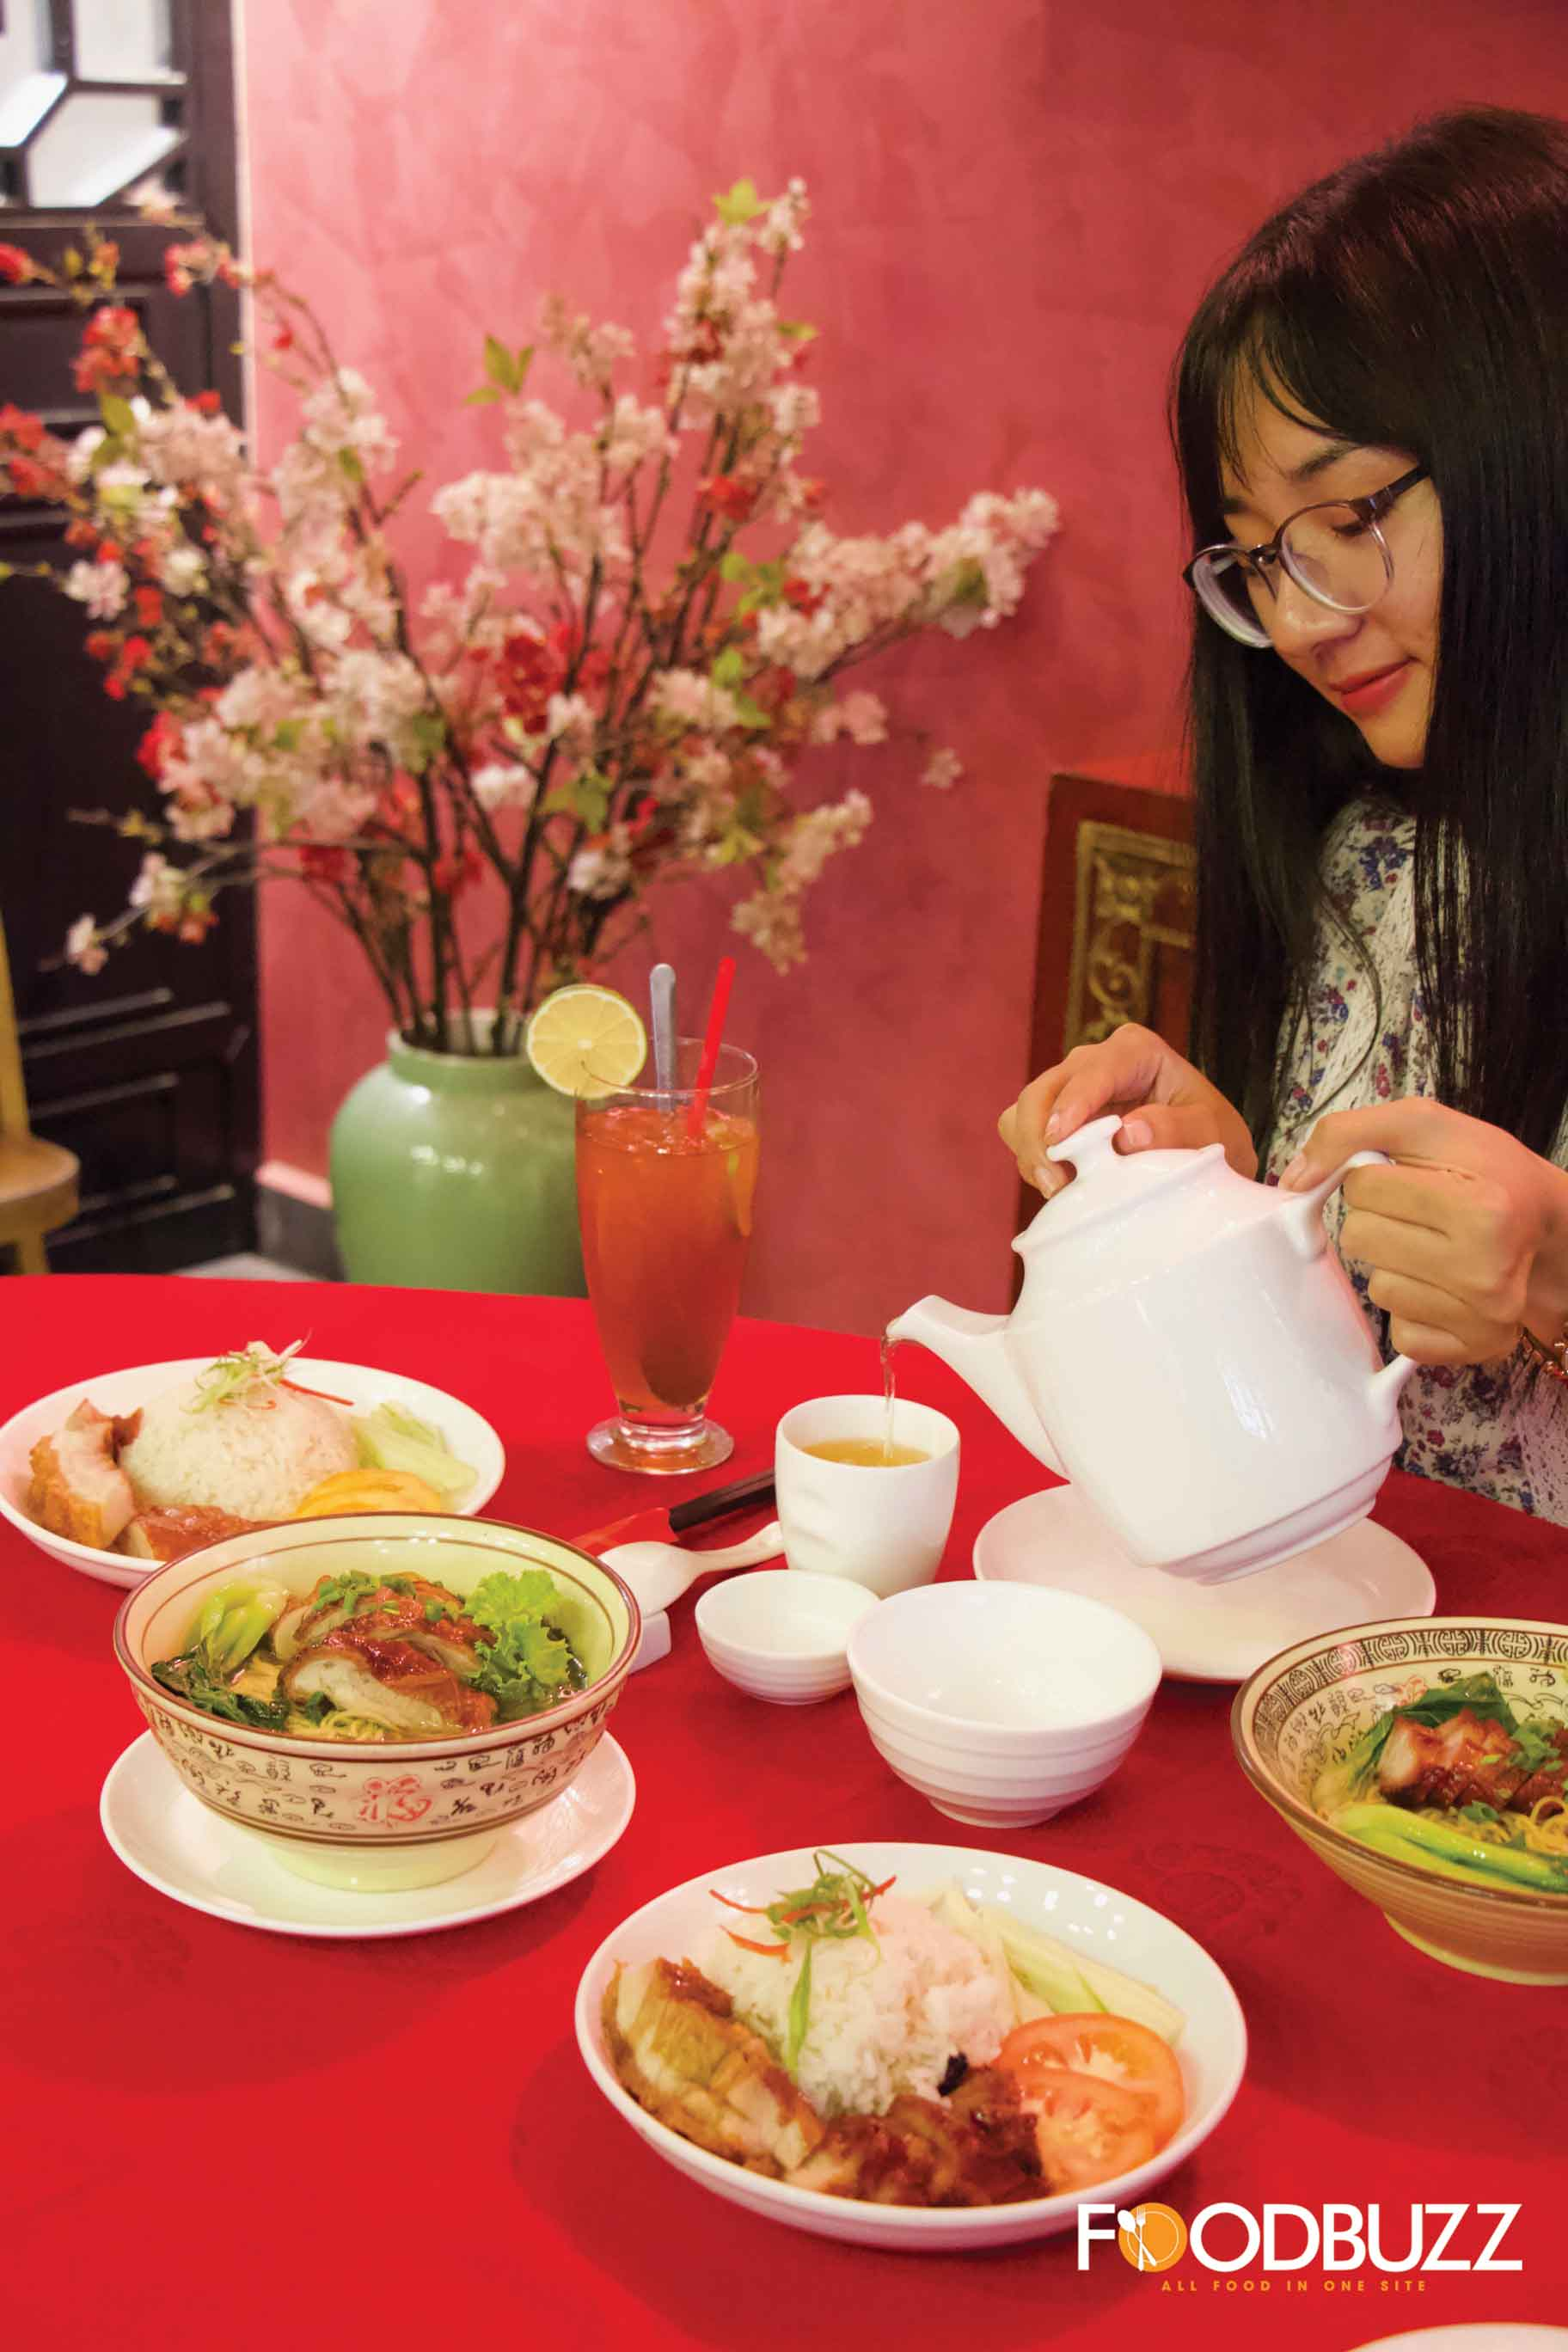 You can't miss a cup of hot tea when you savor Chinese food.